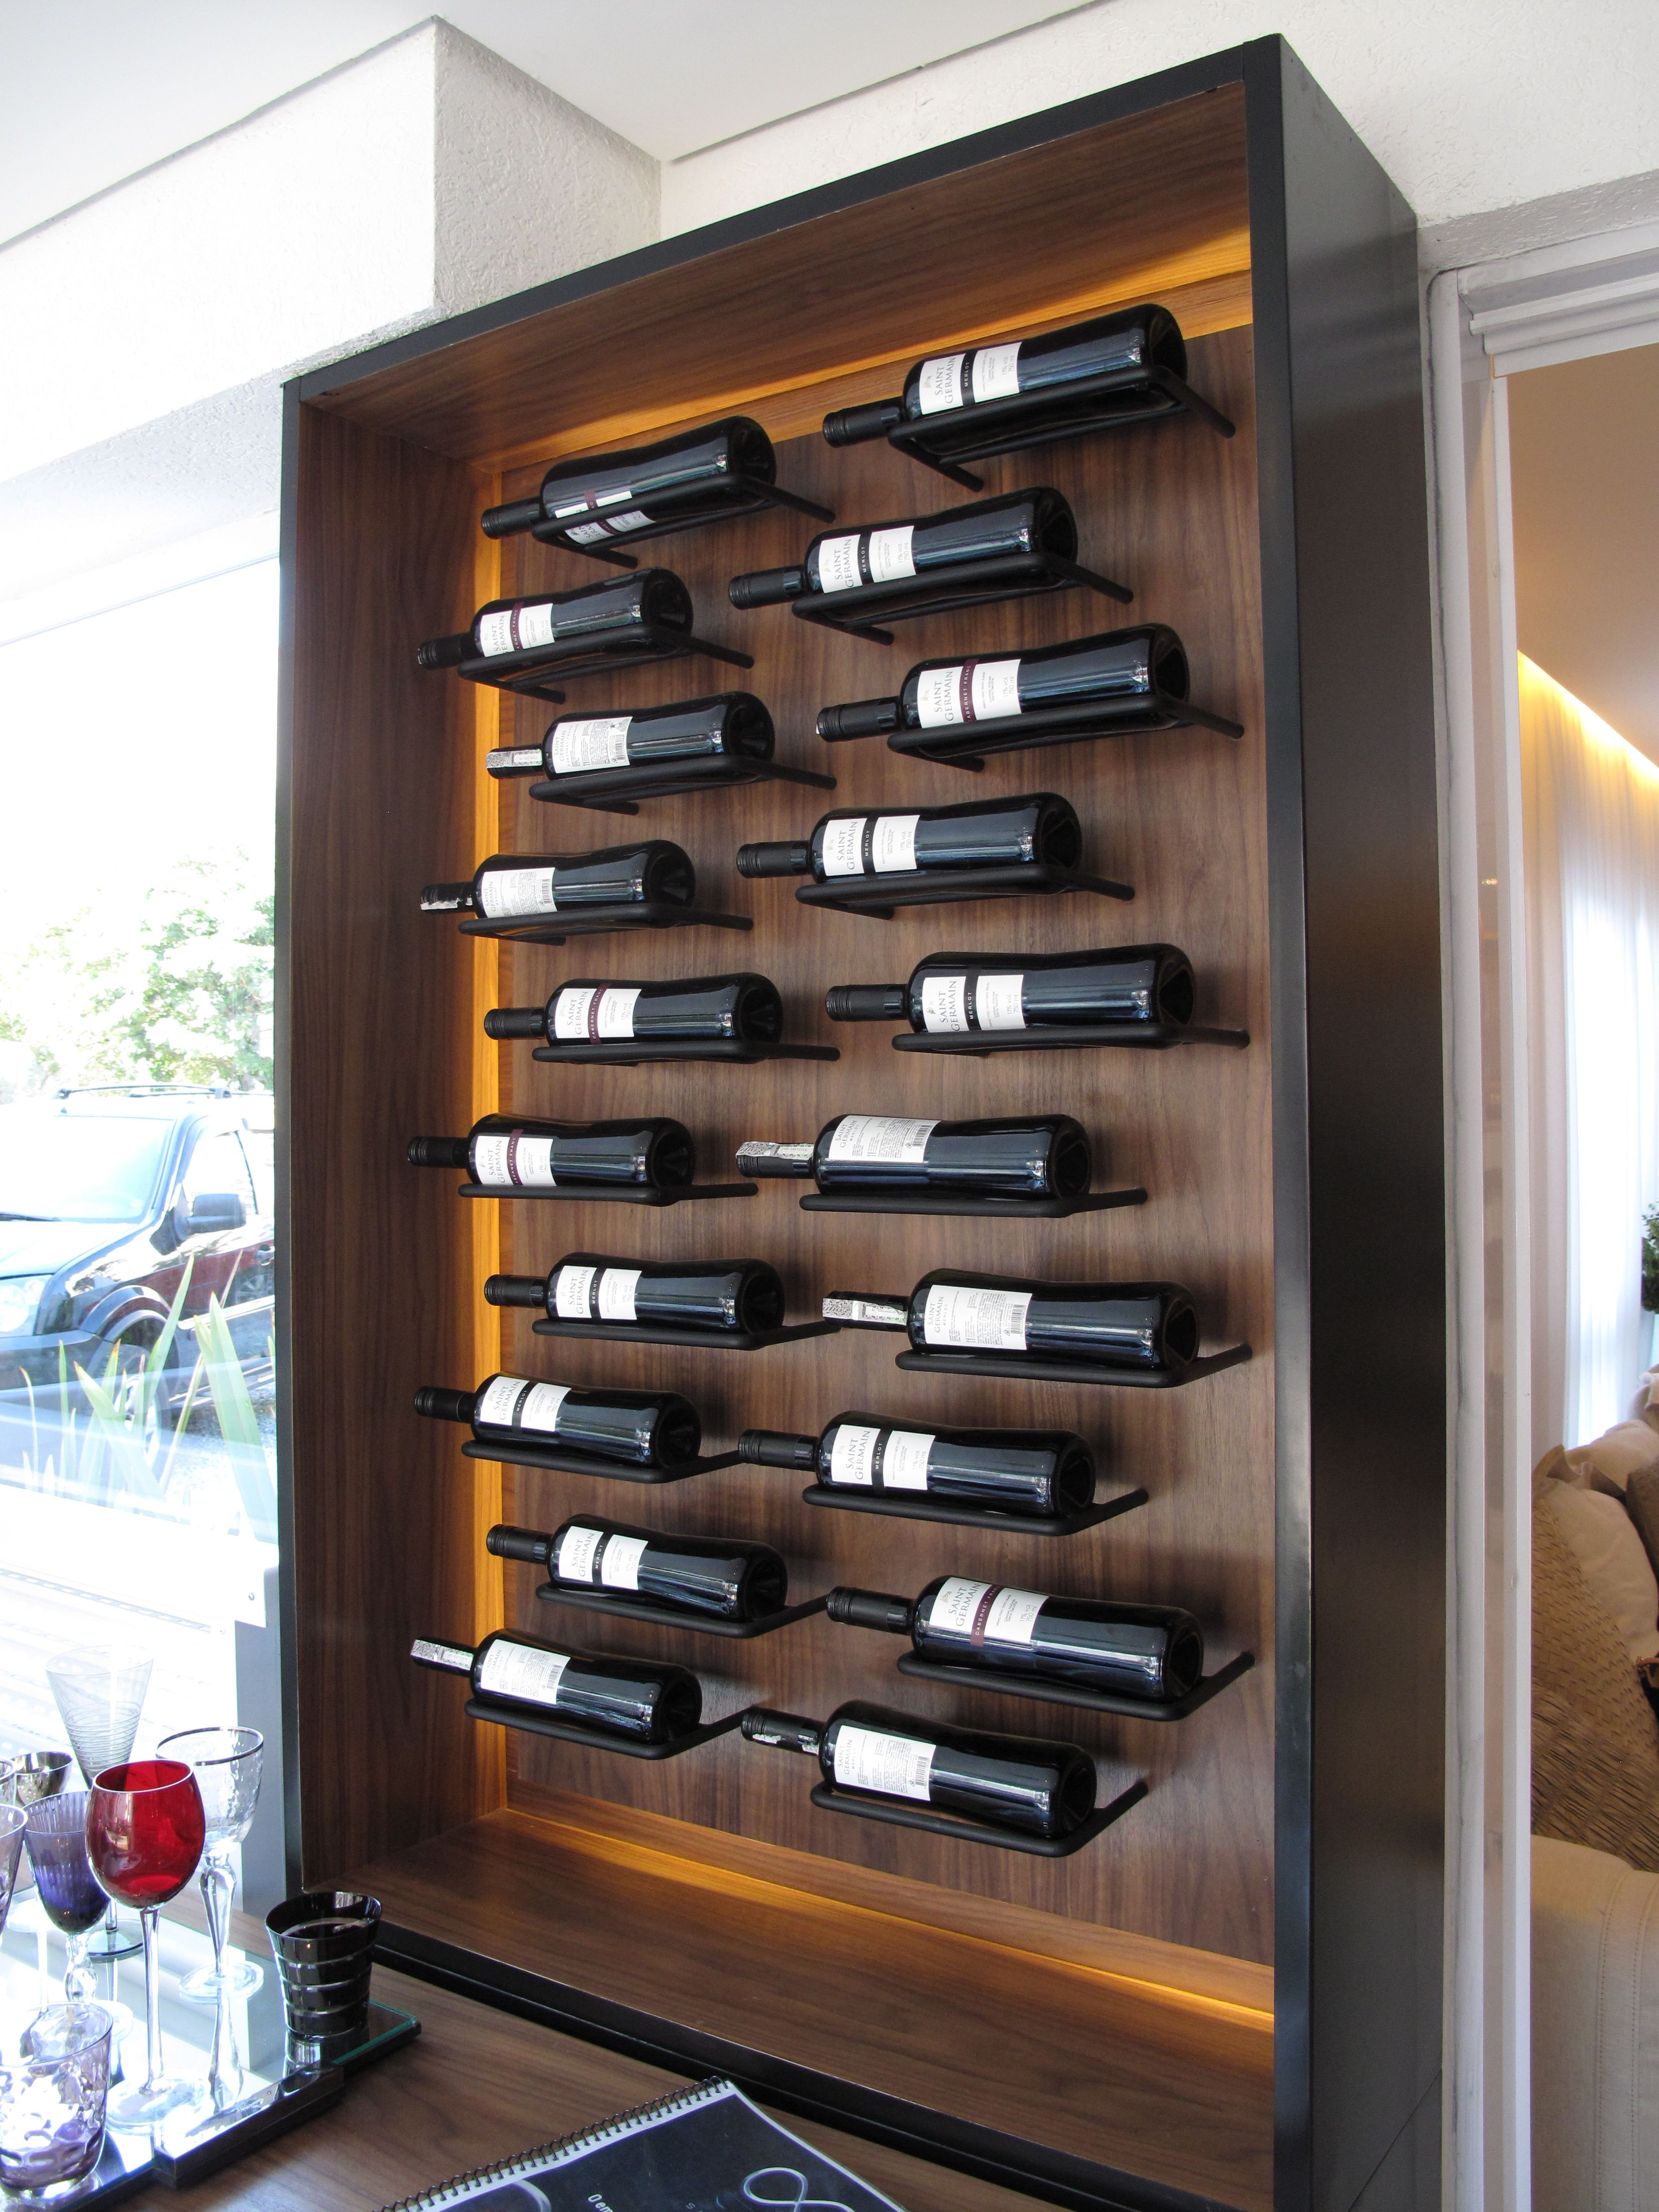 wall spectacular rack art decorative into racks wine finding bottles turn your